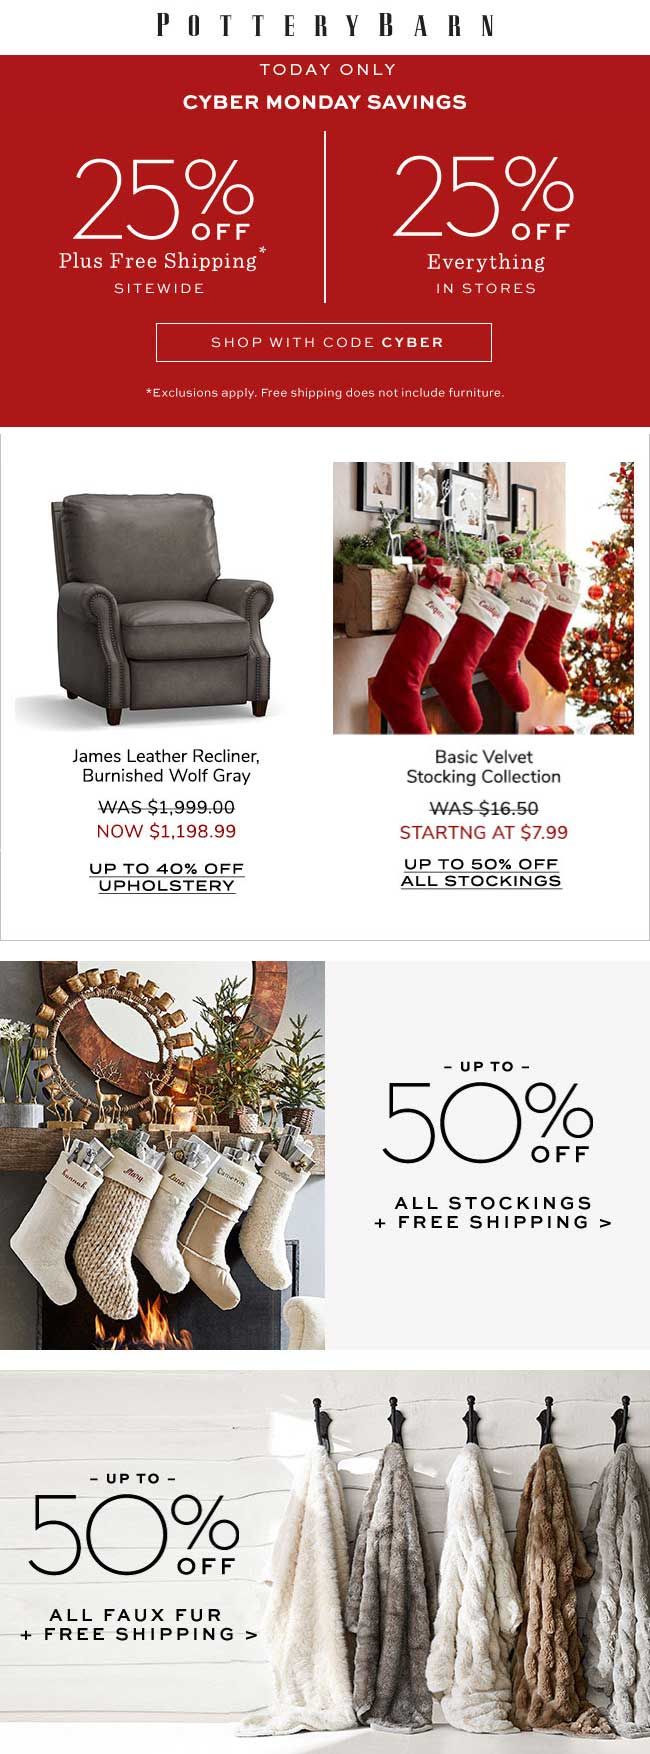 Pottery Barn Coupon July 2020 25% off everything today at Pottery Barn, or online via promo code CYBER